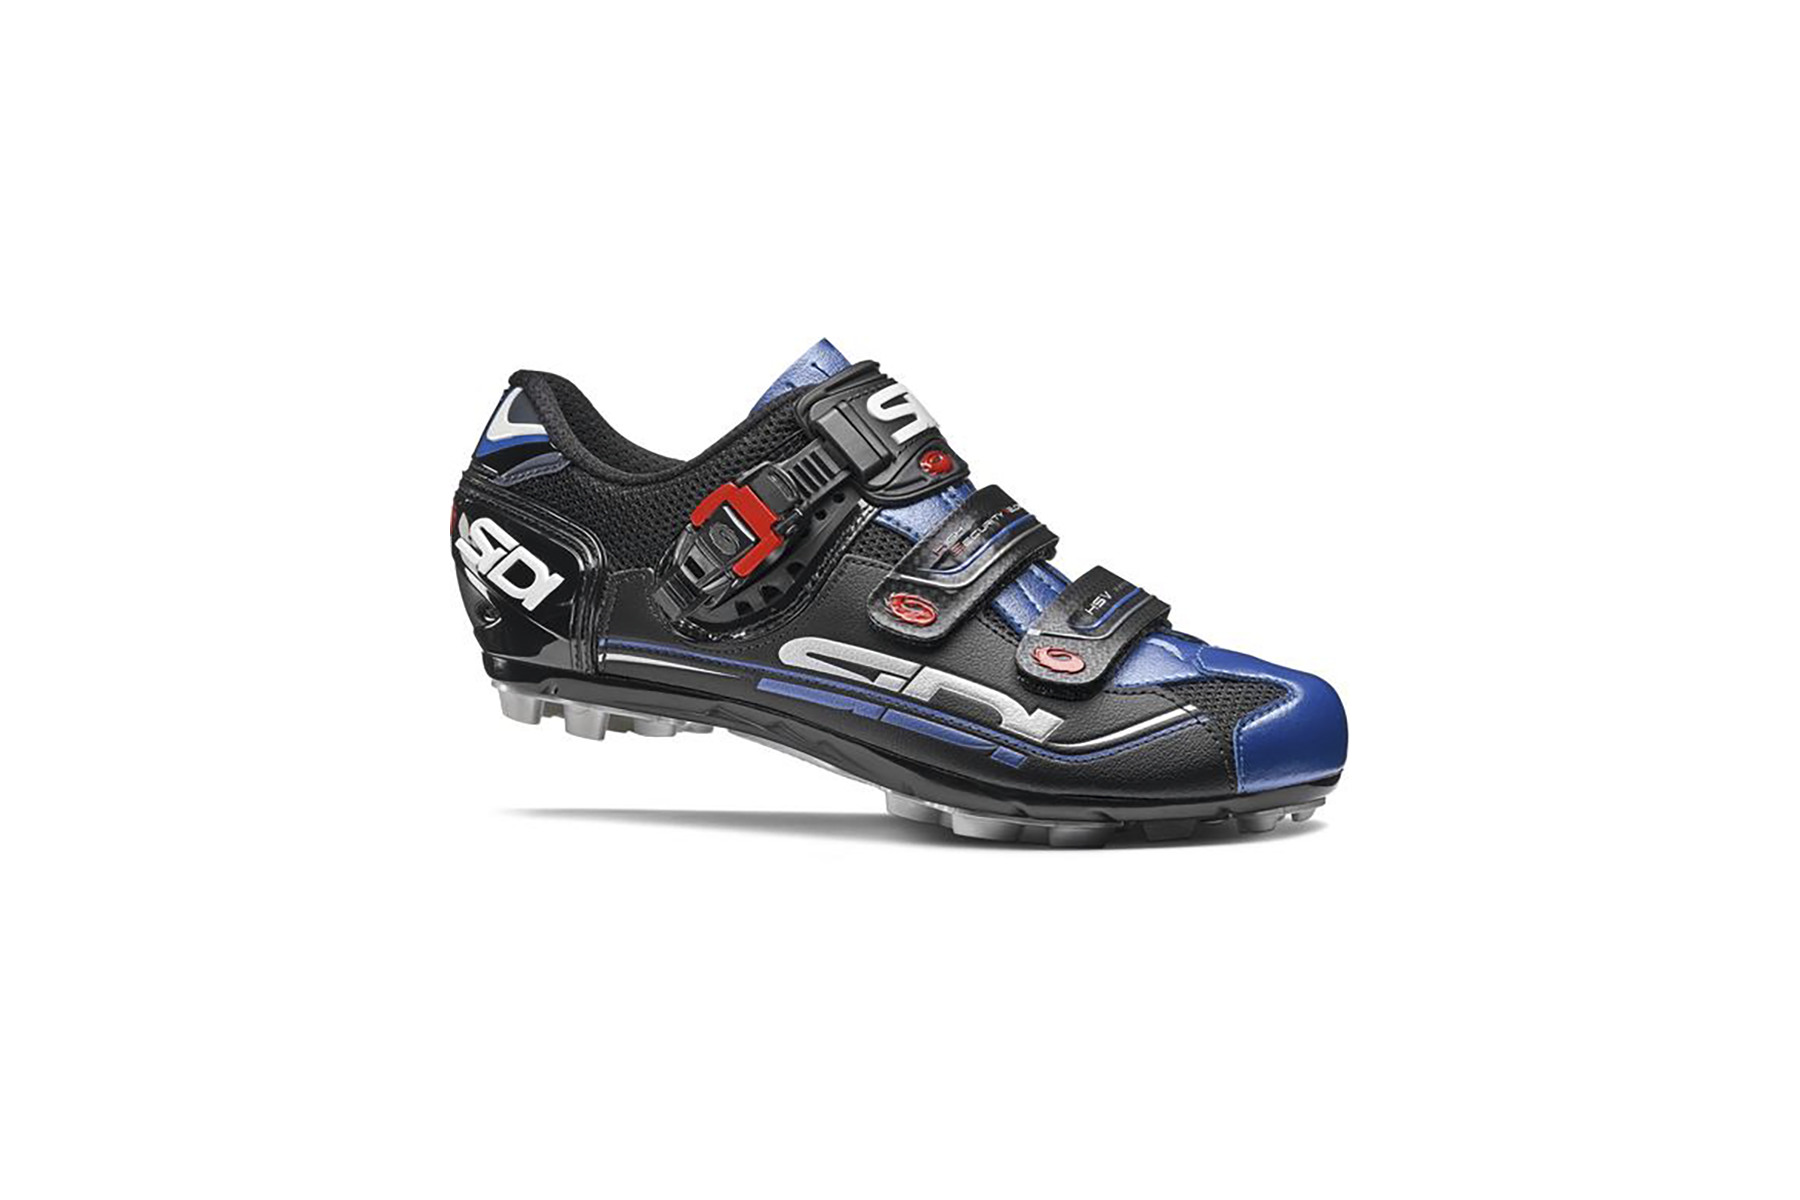 Buy Sidi Shoes